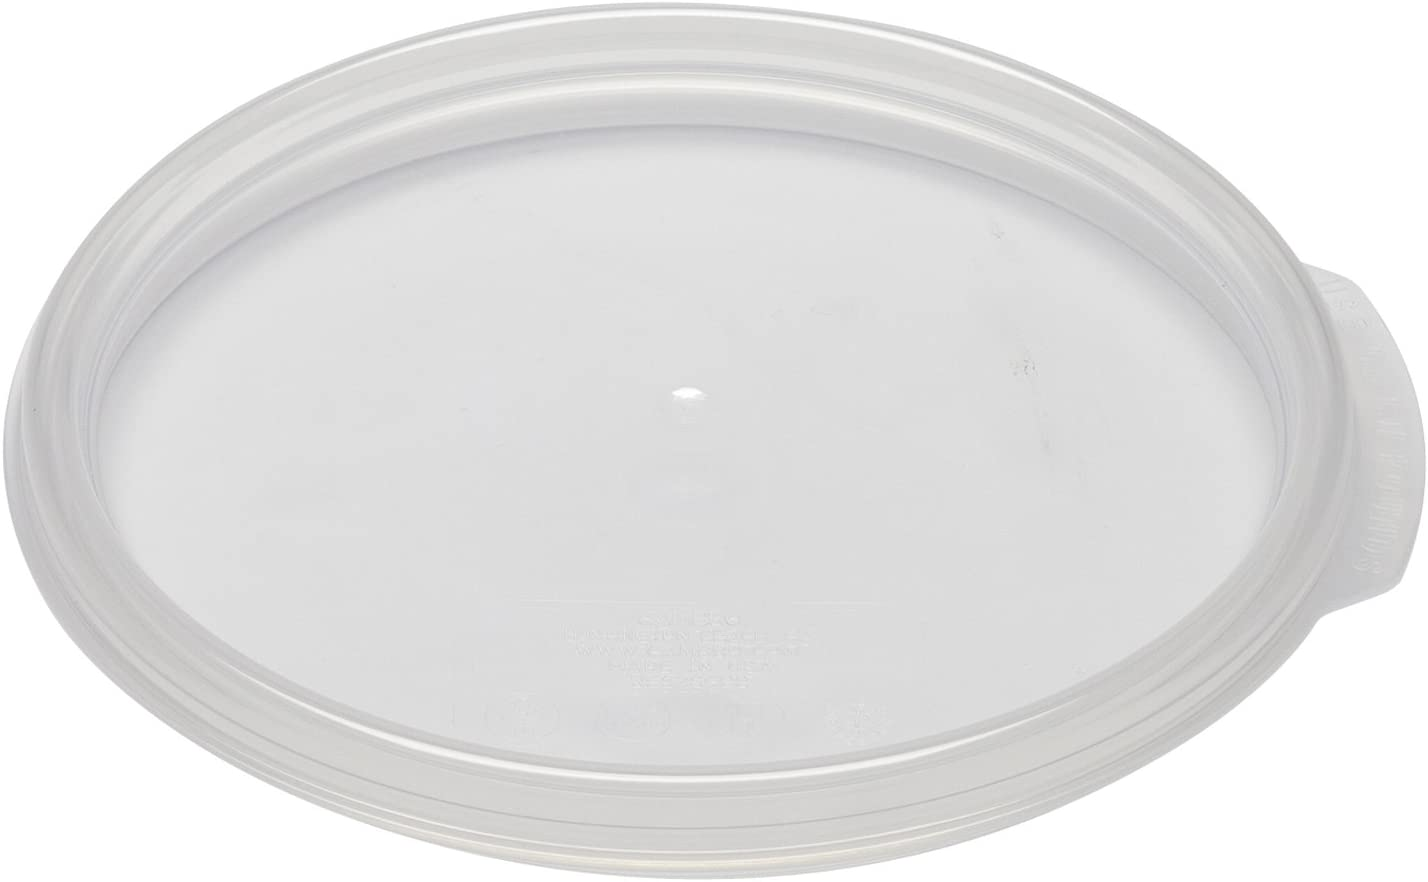 Cambro RFSC1PP190 Round Storage Container Lids, 1 Qt., 6 Pack